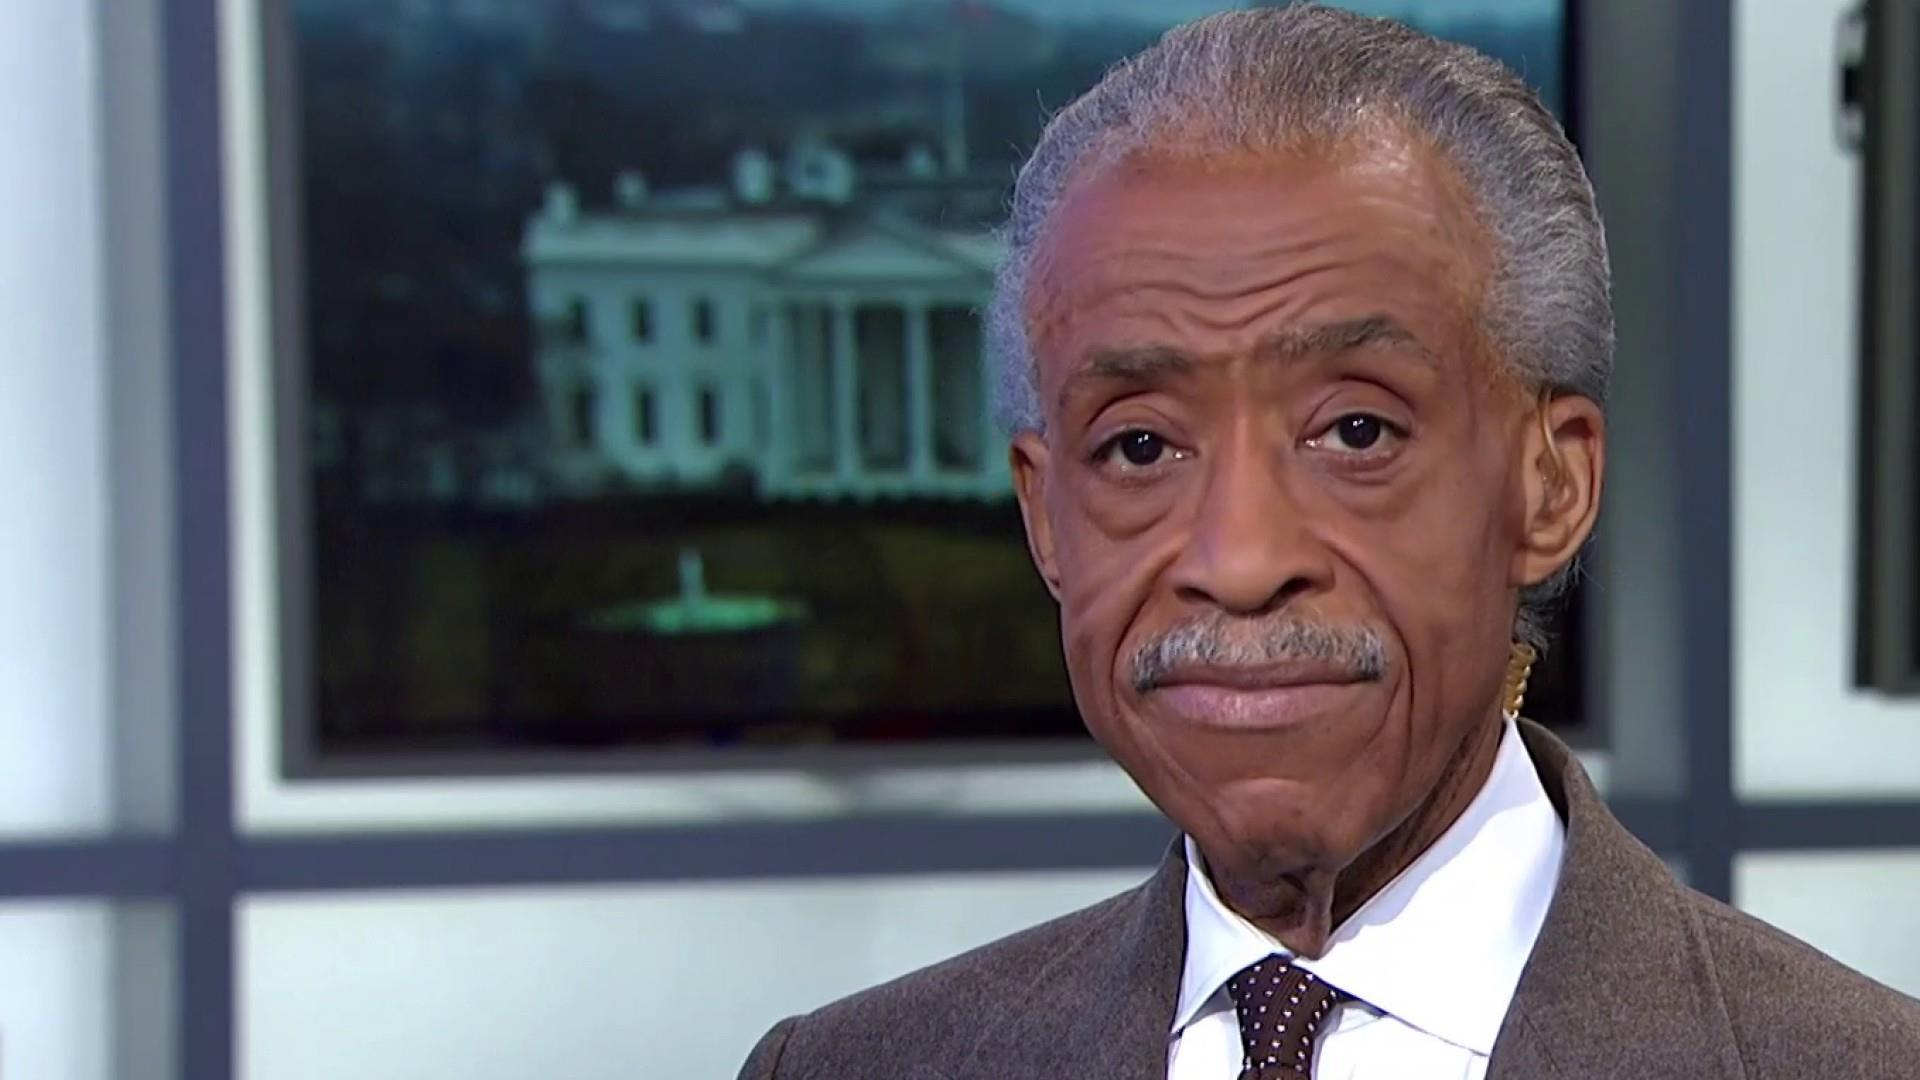 Rev. Al Sharpton on Kamala Harris' 2020 prospects